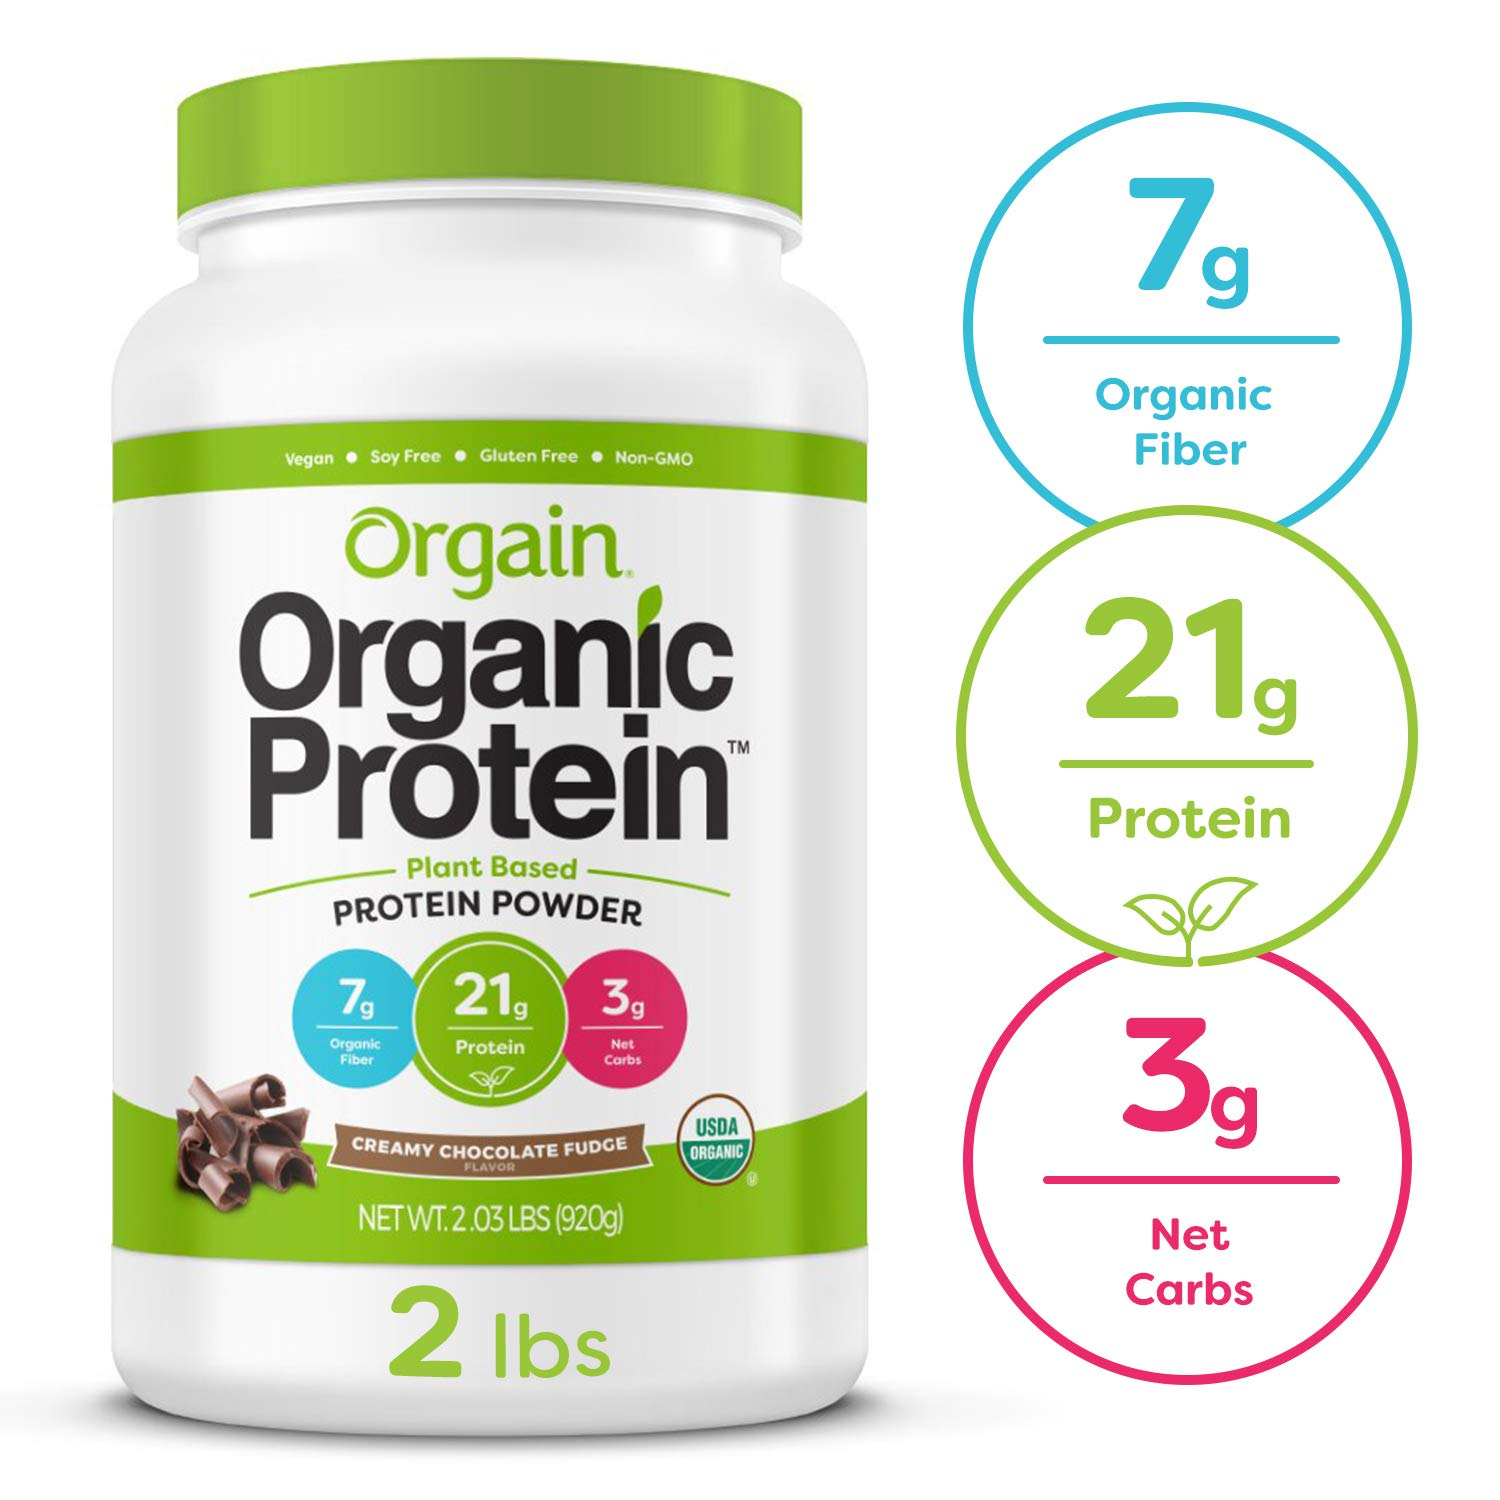 Orgain Organic Plant Based Protein Powder, Creamy Chocolate Fudge - Vegan, Low Net Carbs, Non Dairy, Gluten Free, Lactose Free, No Sugar Added, Soy Free, Kosher, Non-GMO, 2.03 Pound by Orgain